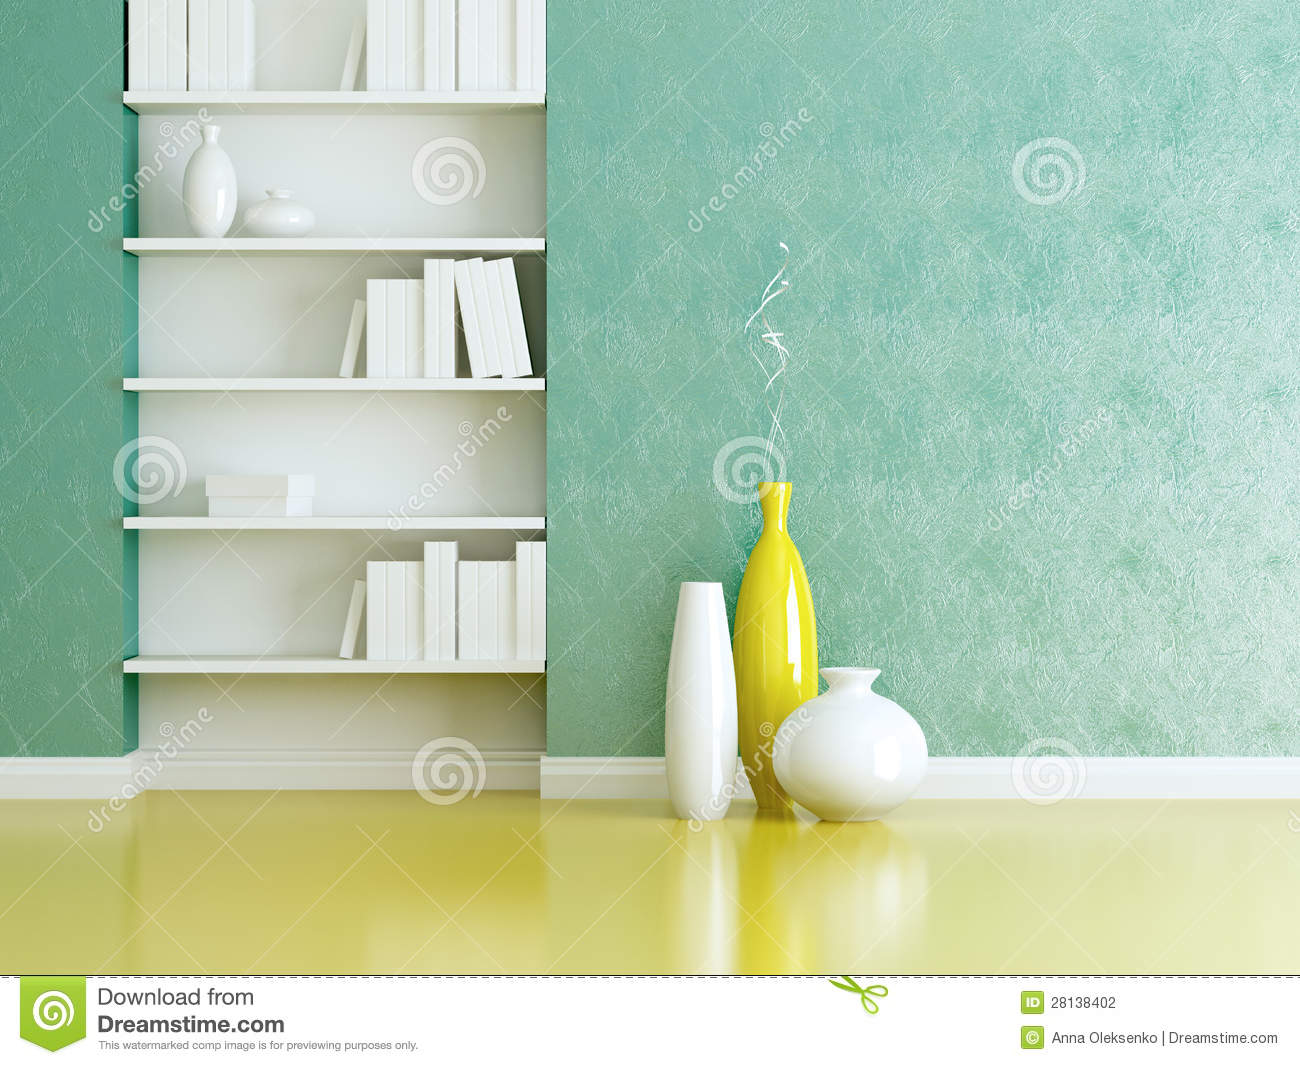 Interior Design Bookshelves And Vases Indoor Stock Photo Image